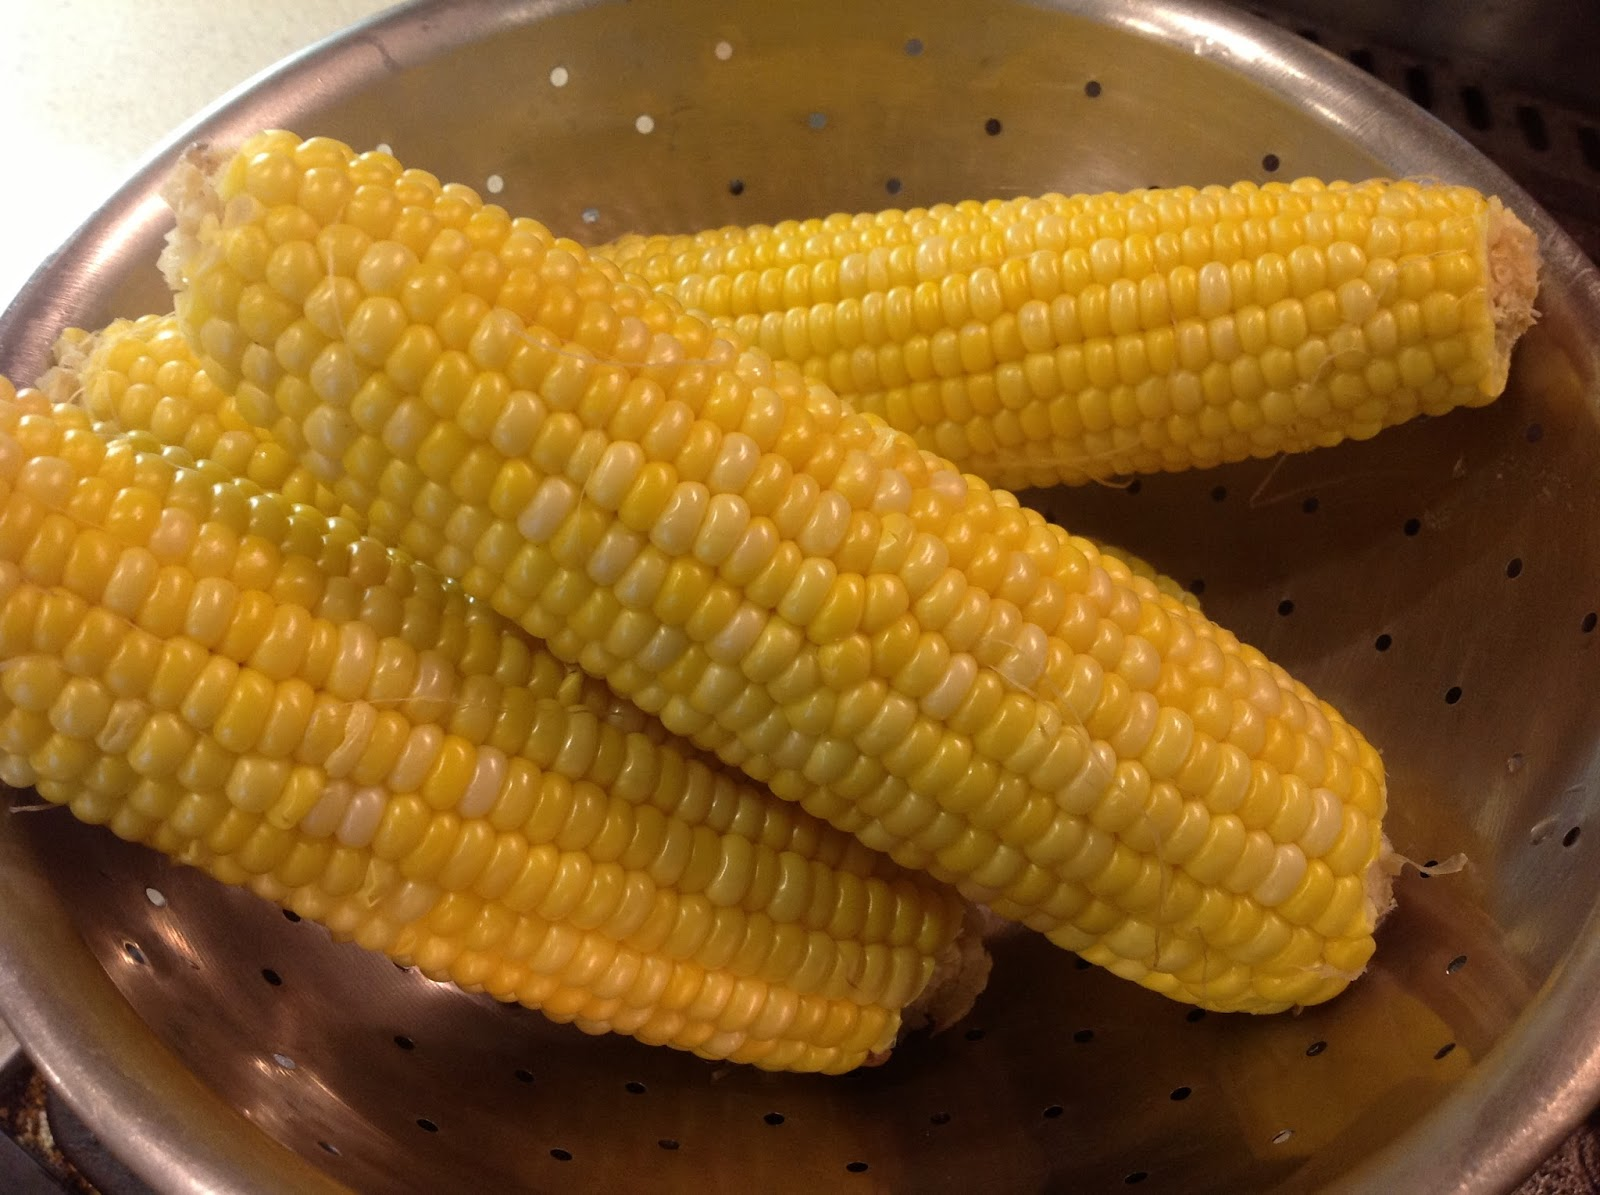 corn muslim Search the world's information, including webpages, images, videos and more google has many special features to help you find exactly what you're looking for.